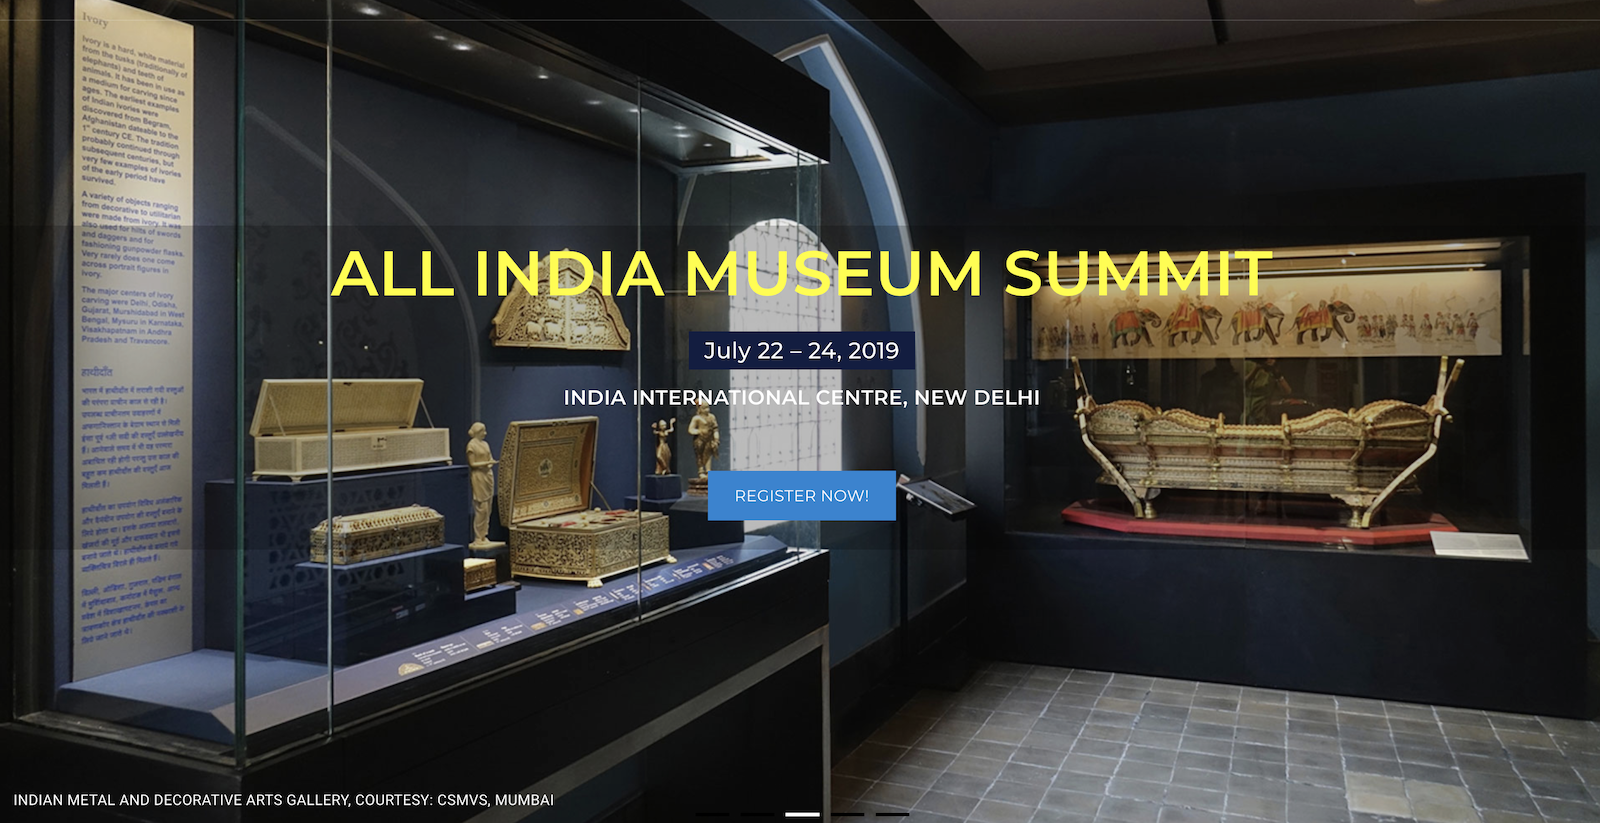 All India Museum Summit